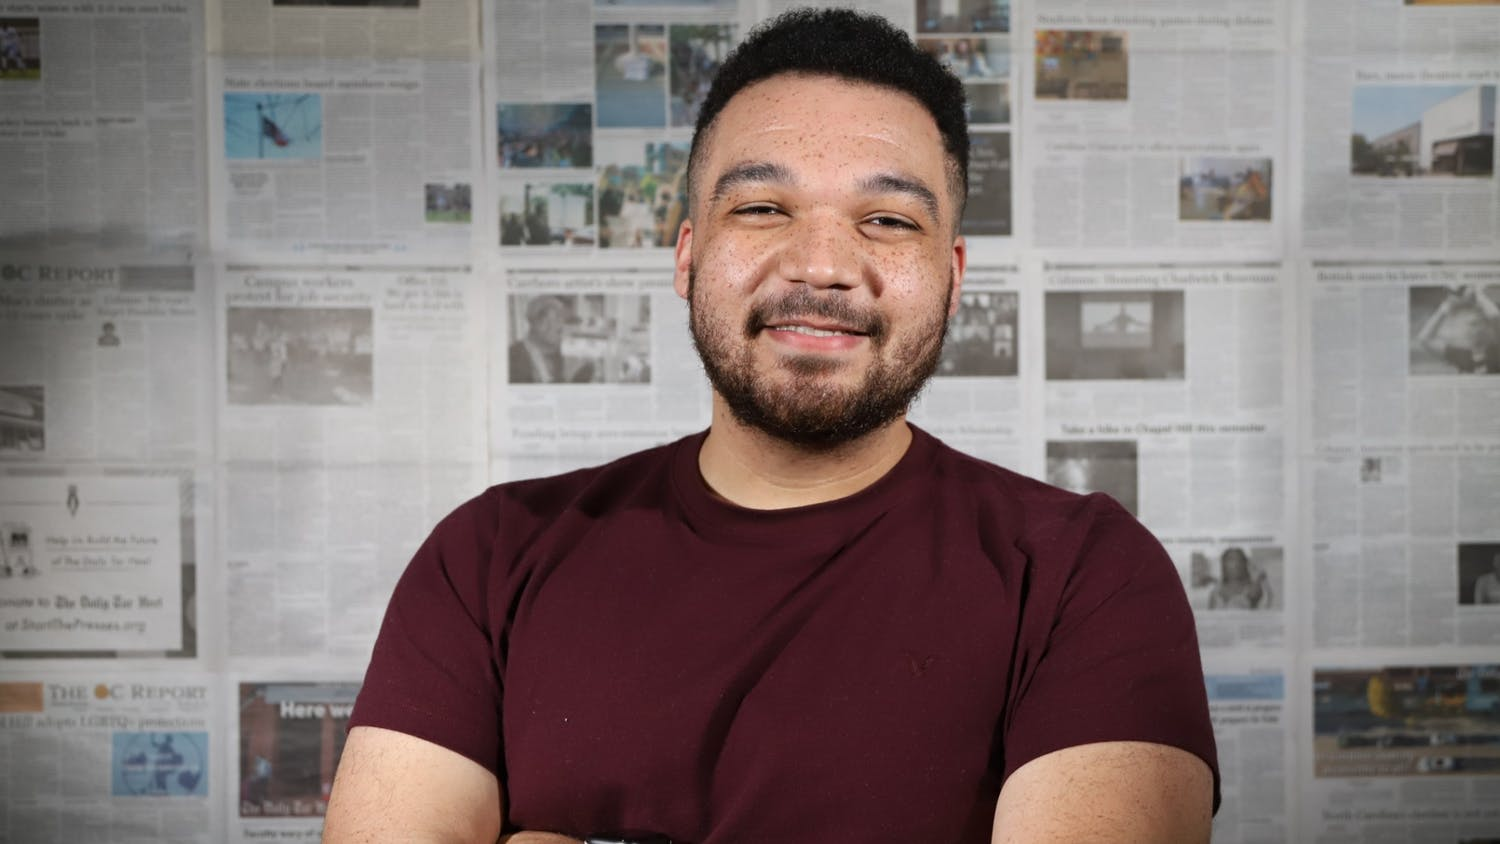 Brandon Standley is the 2020-2021 editorial managing editor for The Daily Tar Heel. He is a senior from Kinston, N.C. majoring in psychology and public relations.